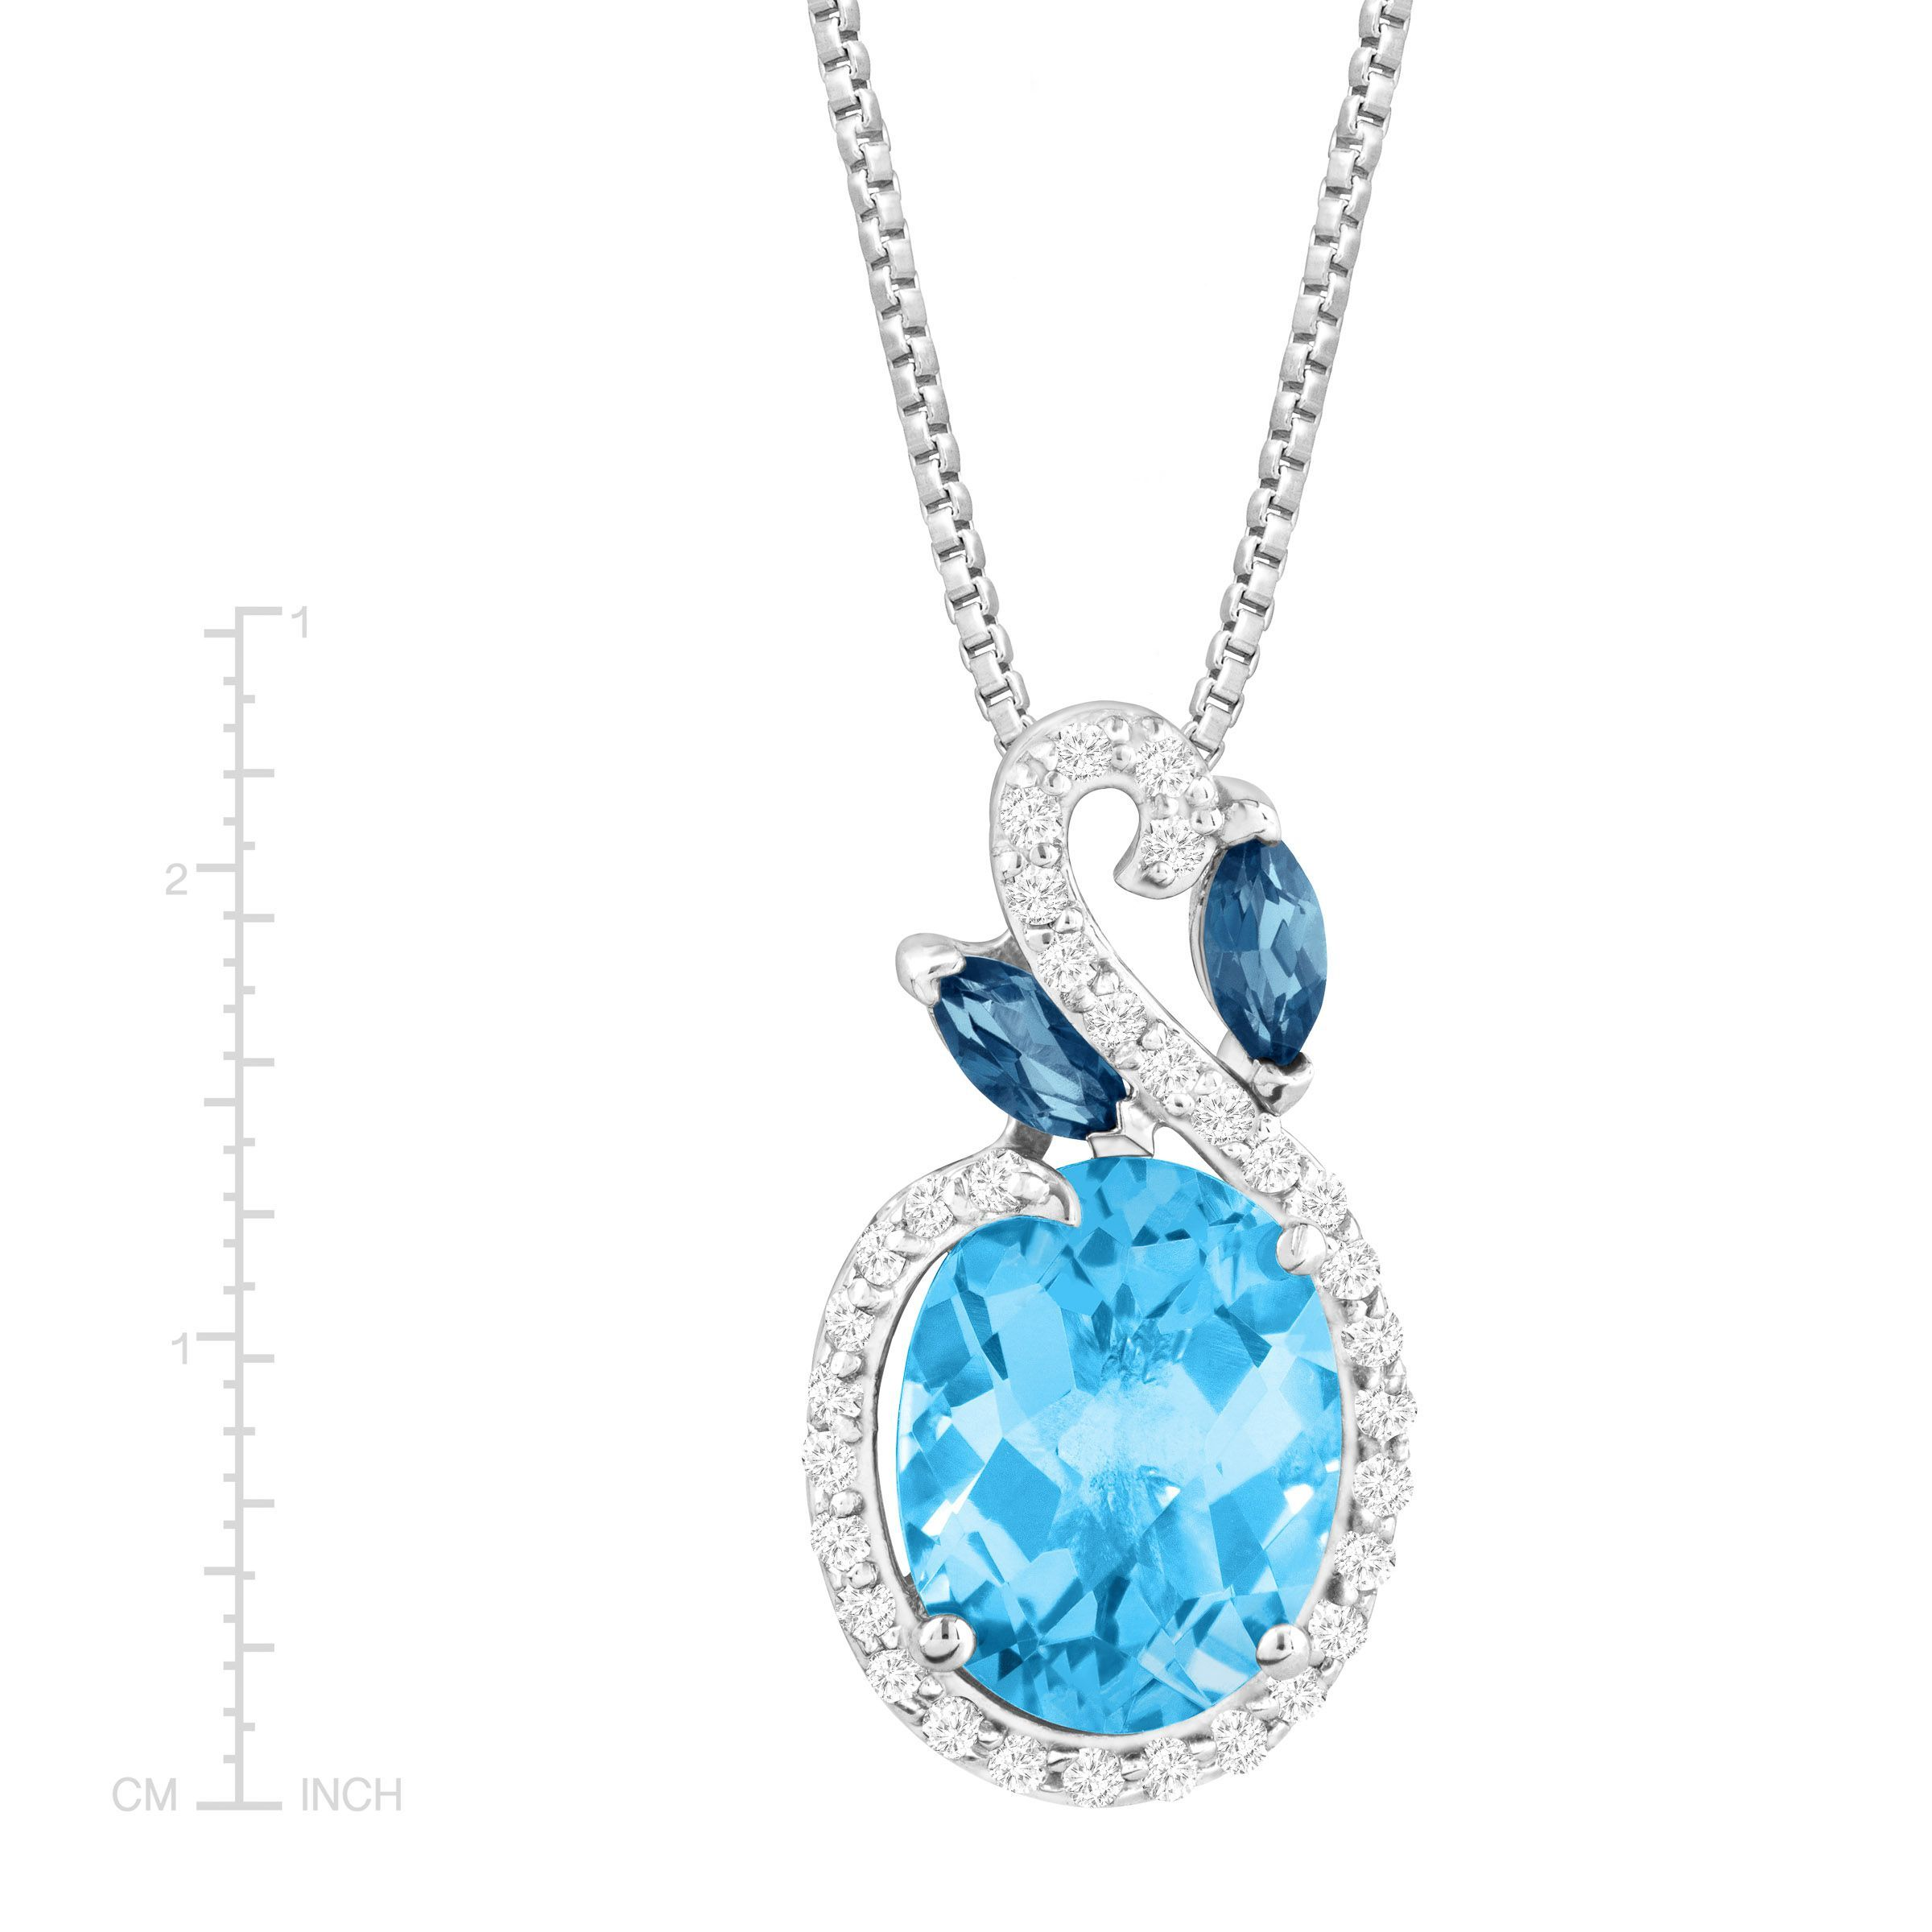 design penelope and the tanzanite blue pendant necklace chalcedony apatite topaz with